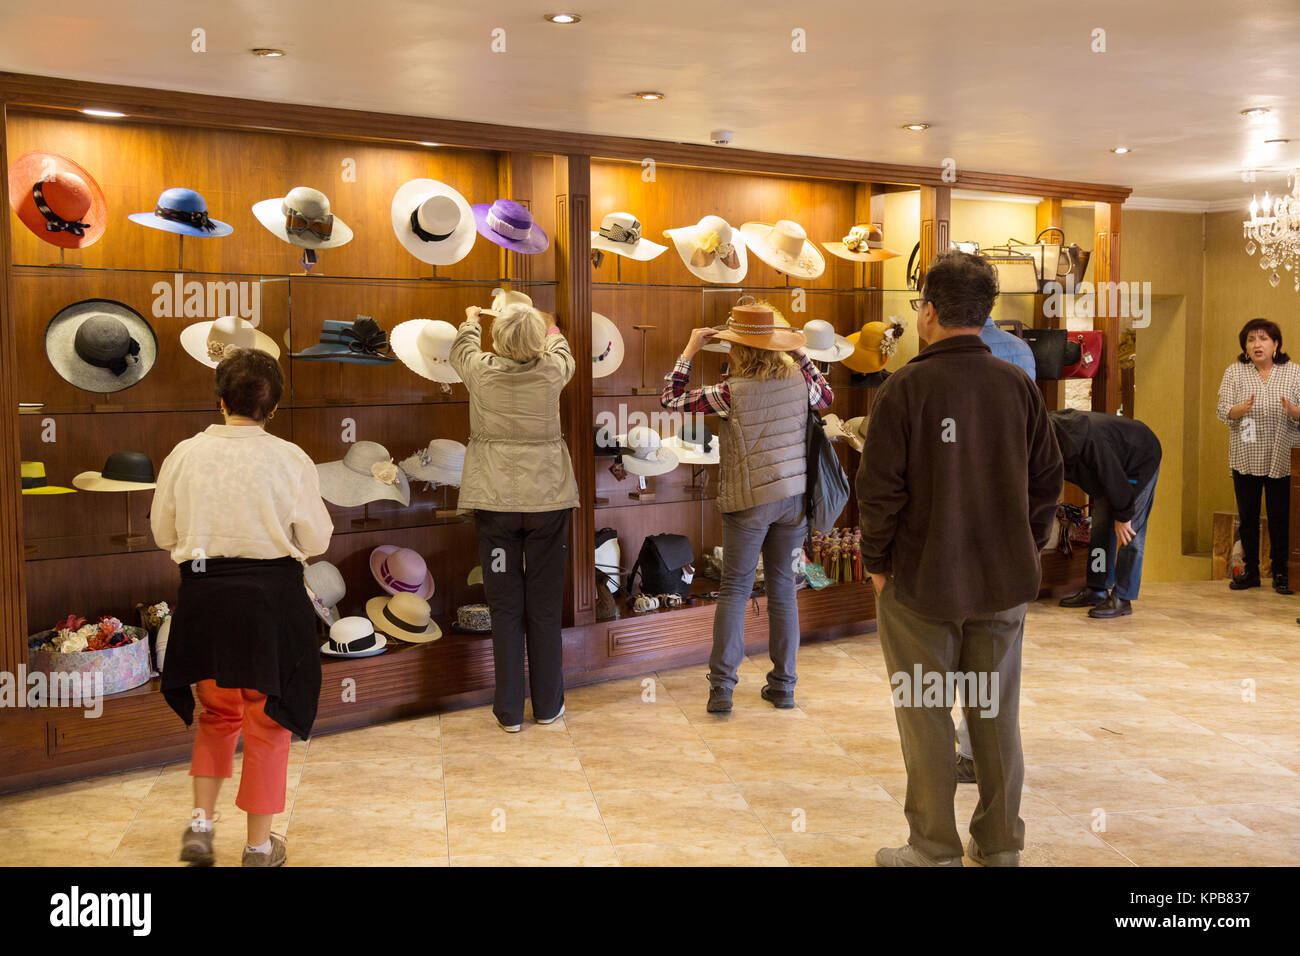 Hat Hats Store Shop Imágenes De Stock   Hat Hats Store Shop Fotos De ... 83b05942624